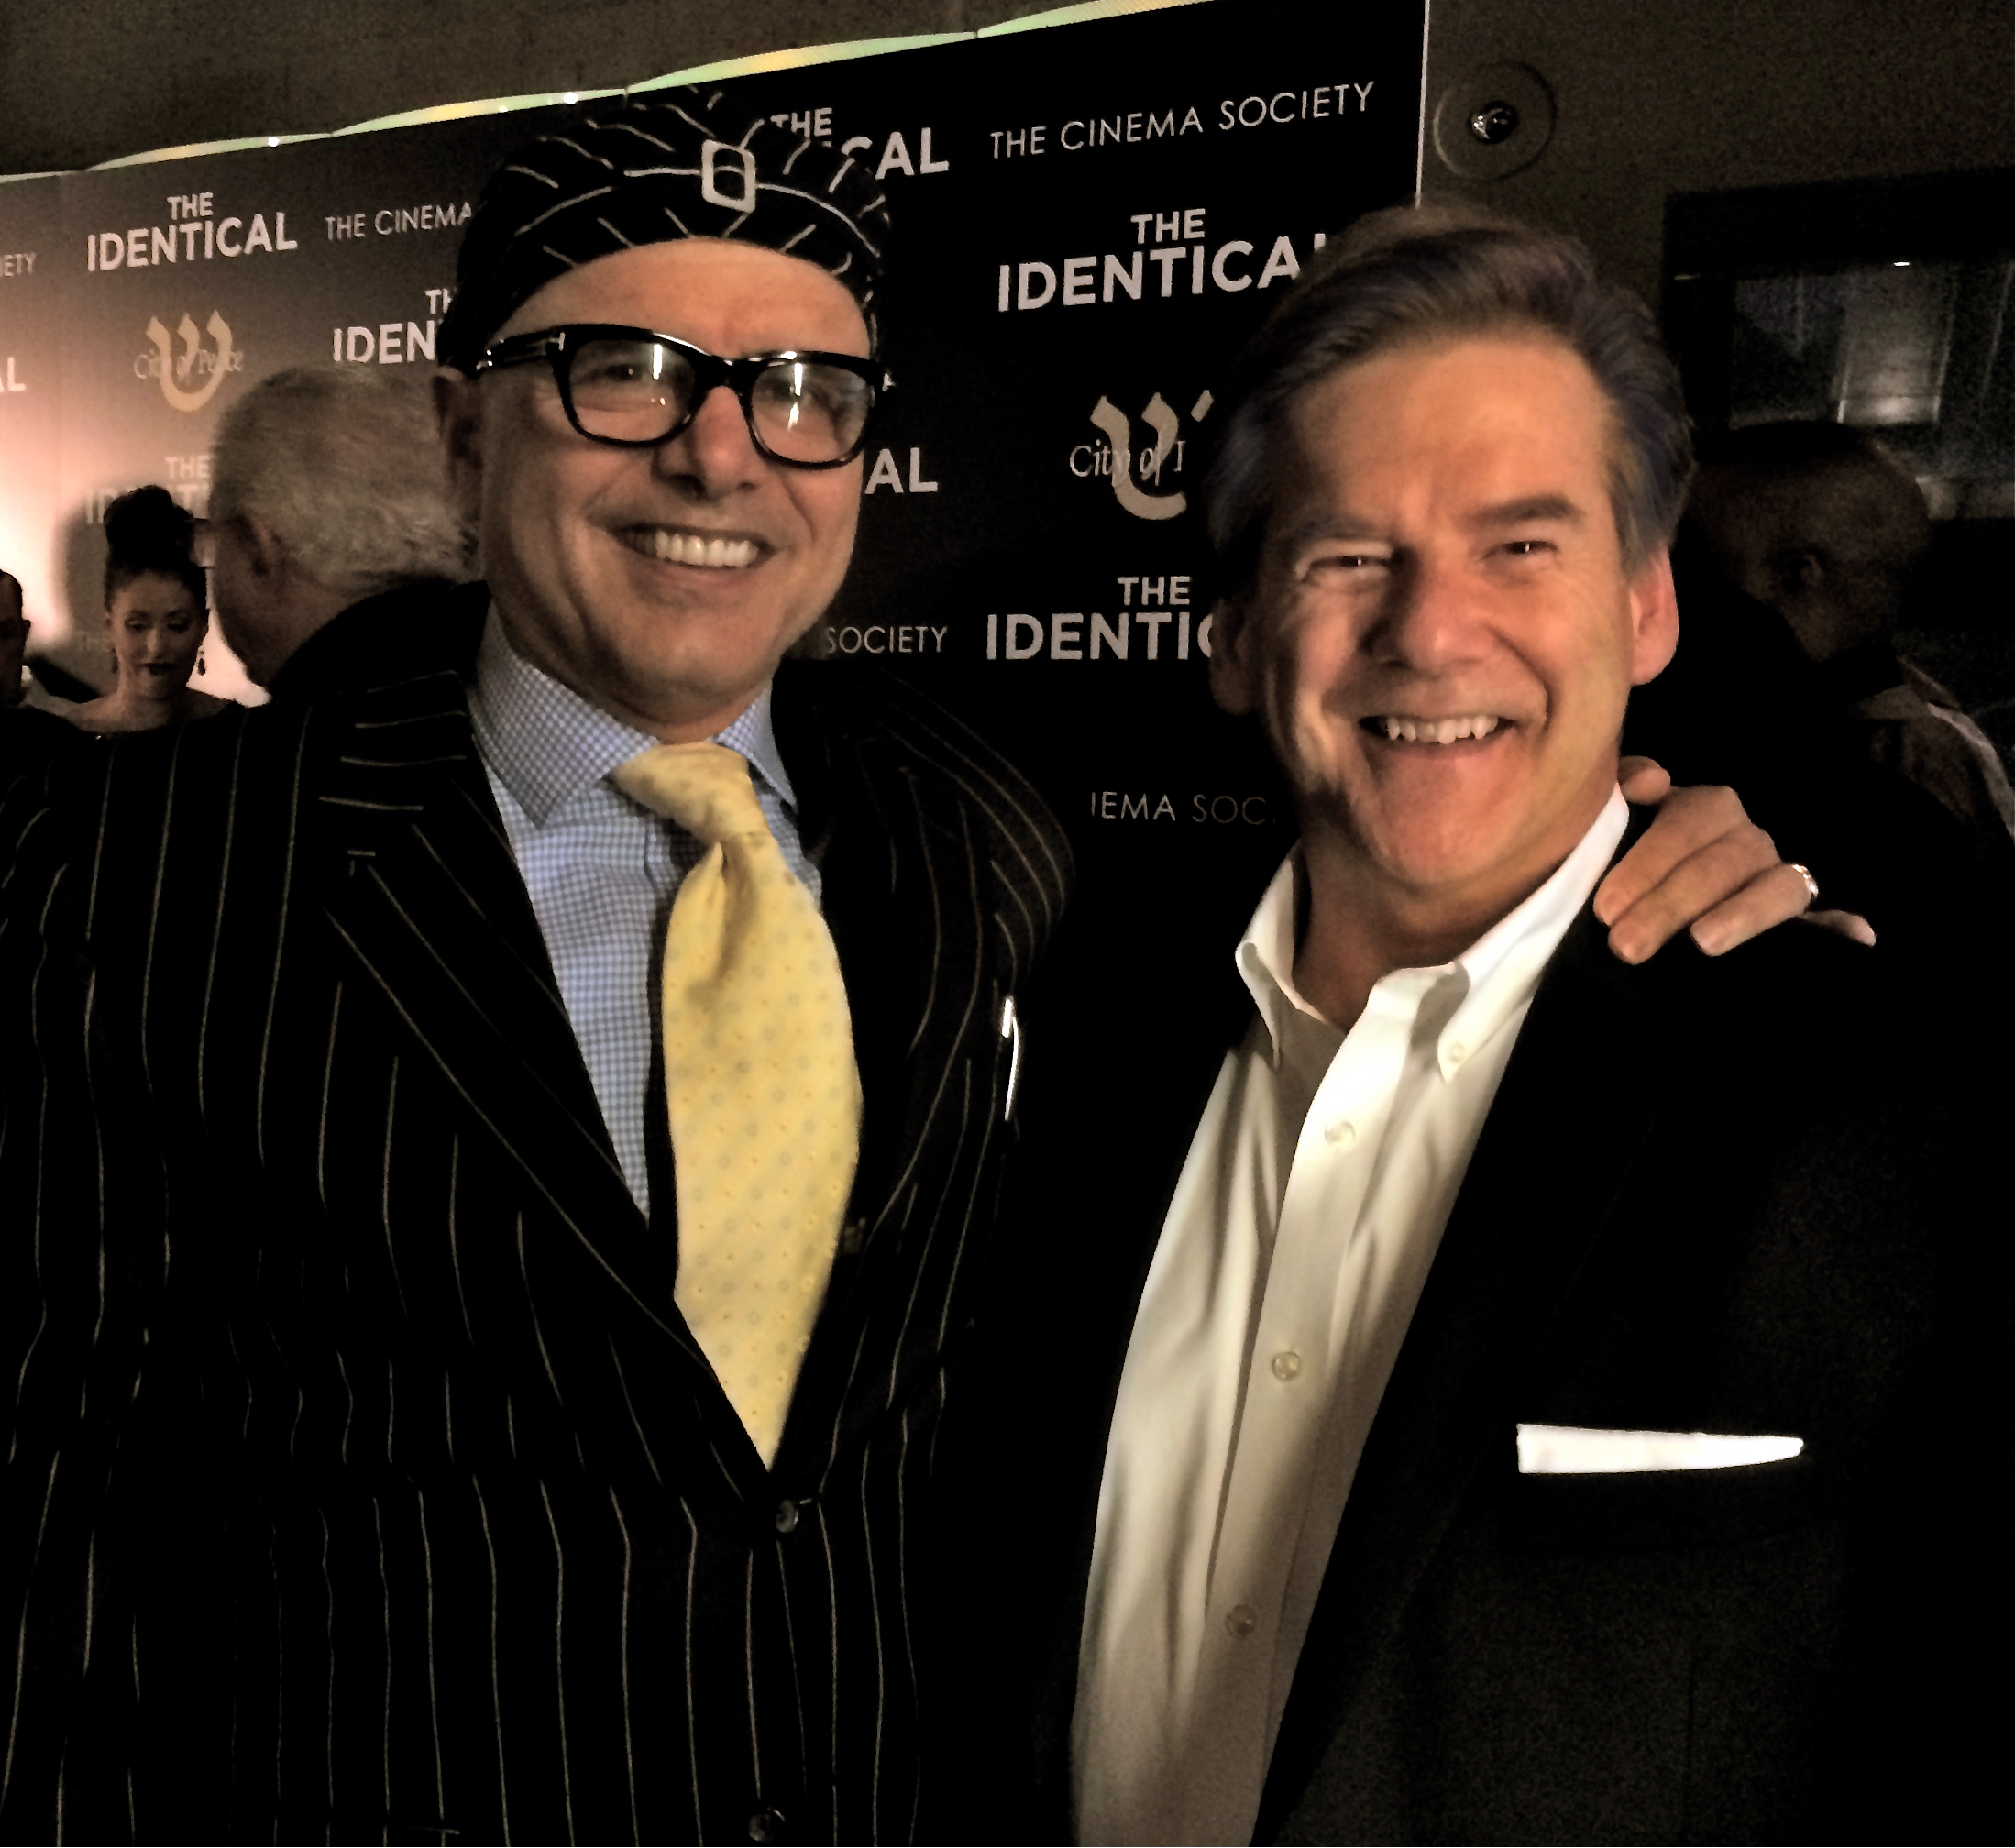 "joe pantoliano (Avi Hirshberg ""The Identical"") and Kelly Frey (Associate Producer ""The Identical"") at the movie premiere of ""The Identical"" in NYC, April 2014."